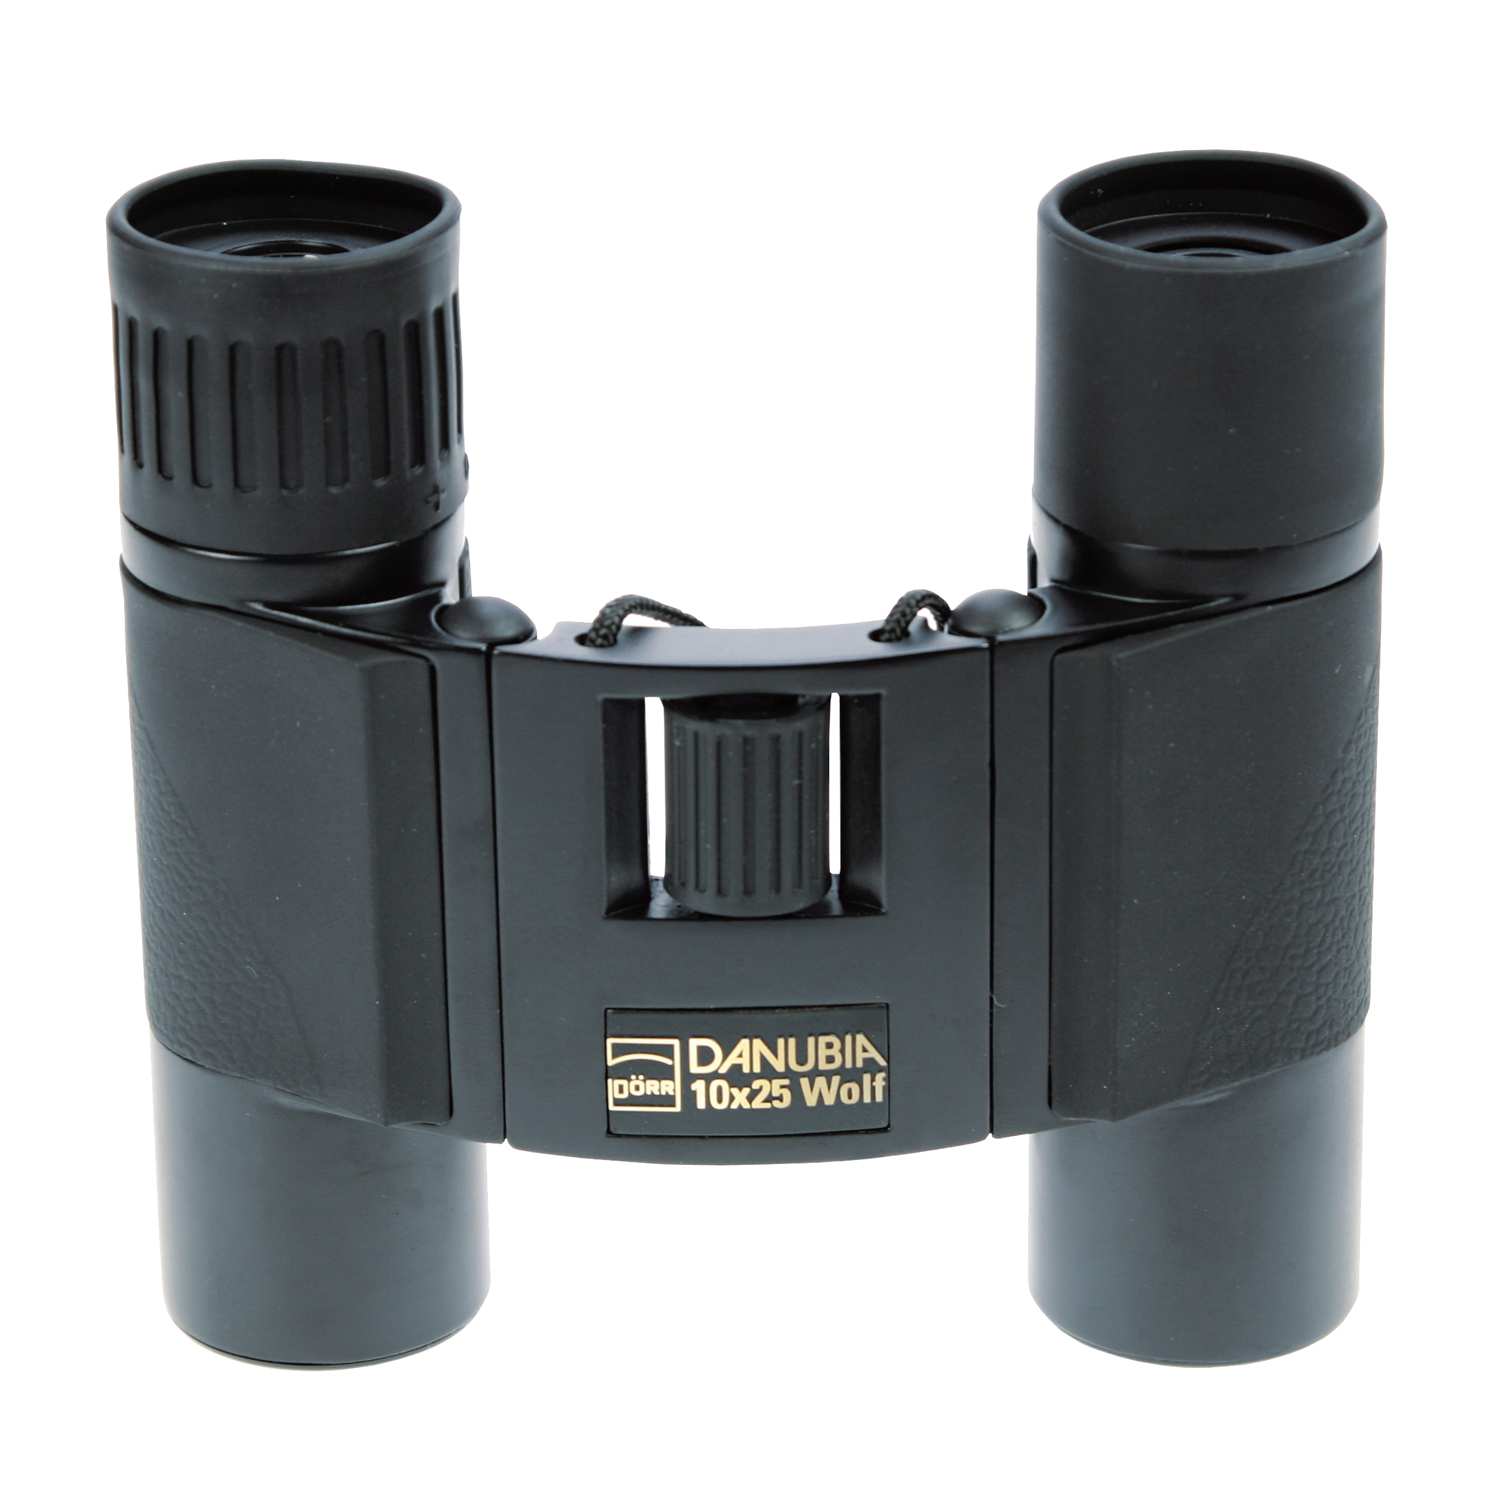 Best Pocket Binoculars